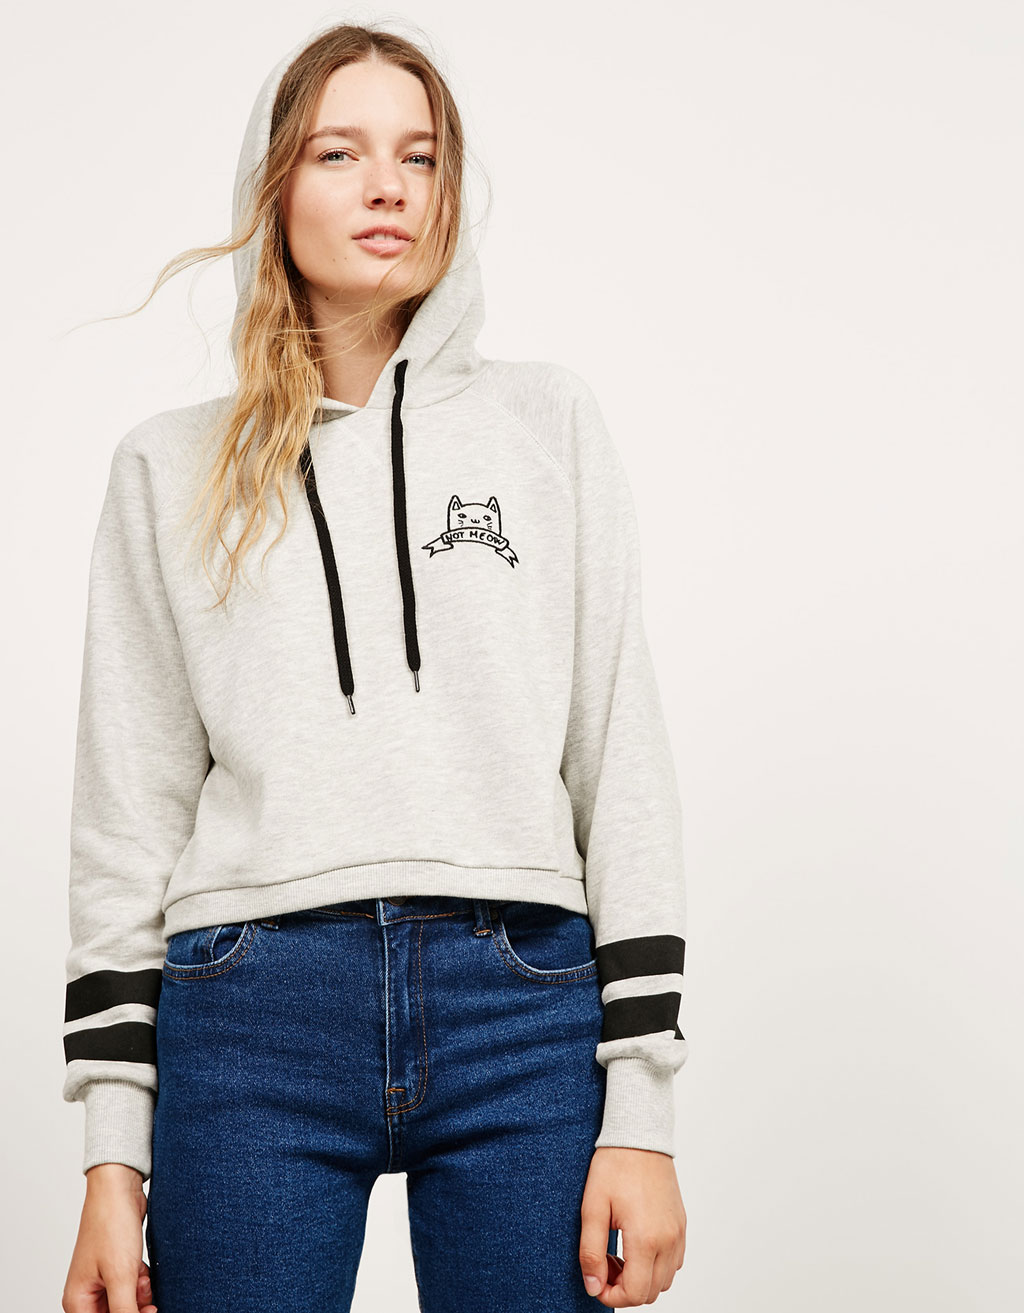 Cropped embroidered text hooded plush sweatshirt